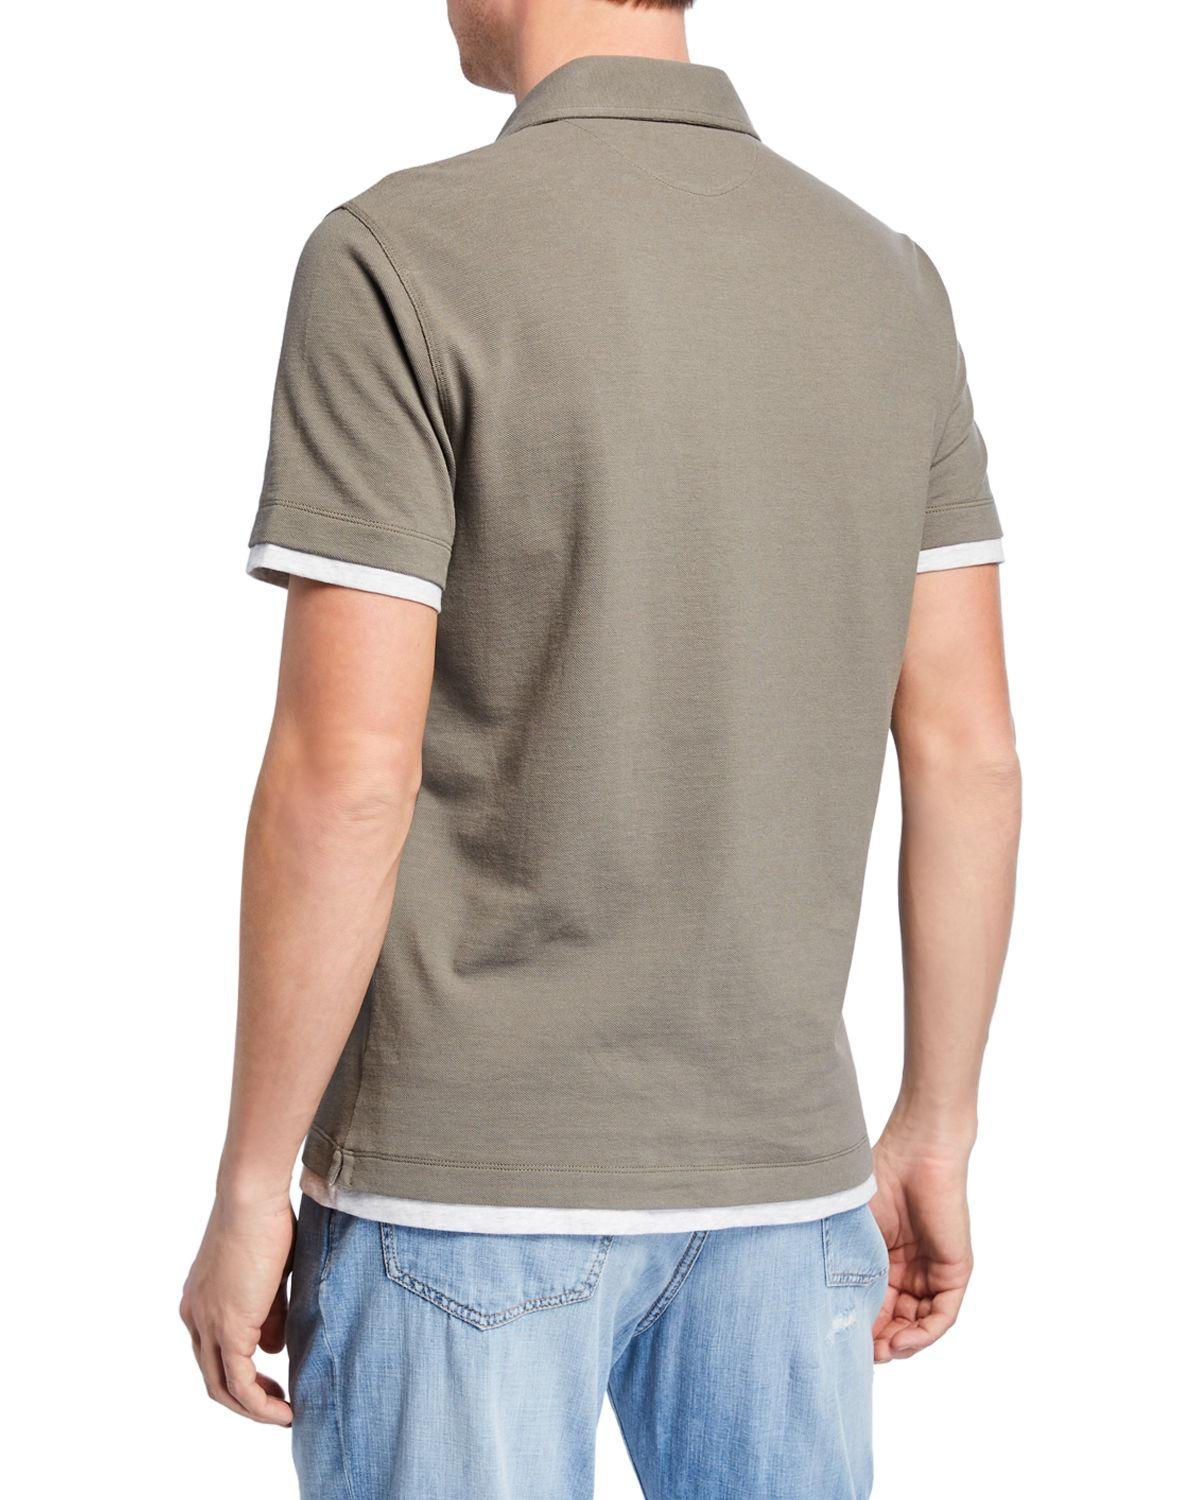 871a32d2737f9 Lyst - Brunello Cucinelli Men s Overlapping Cotton Slim Polo Shirt in Green  for Men